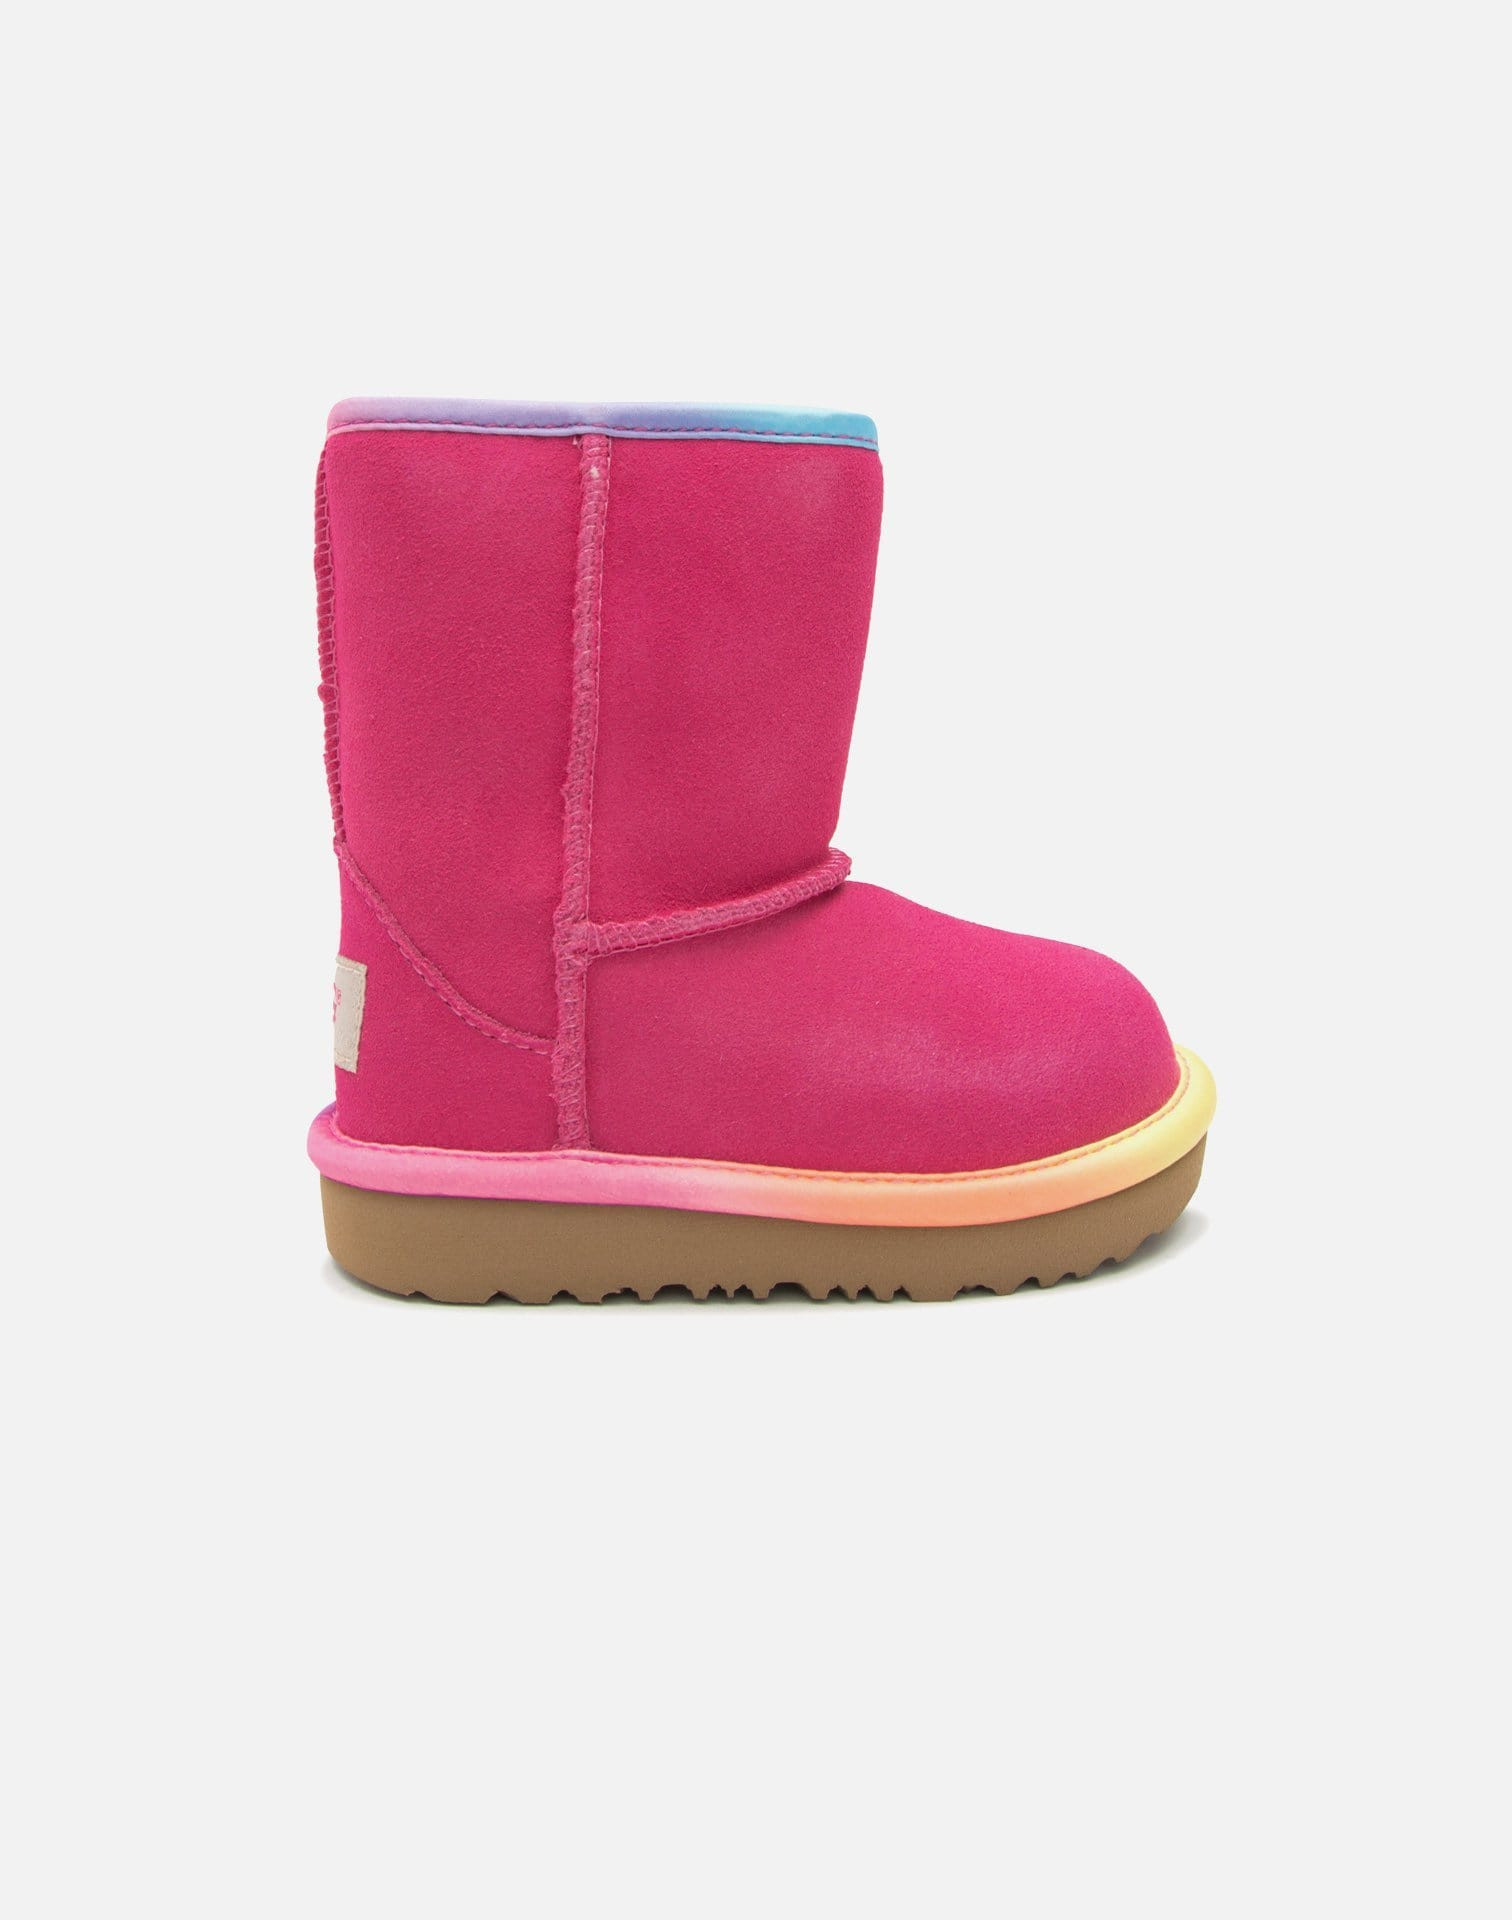 UGG Mini Classic Short II Rainbow Boots